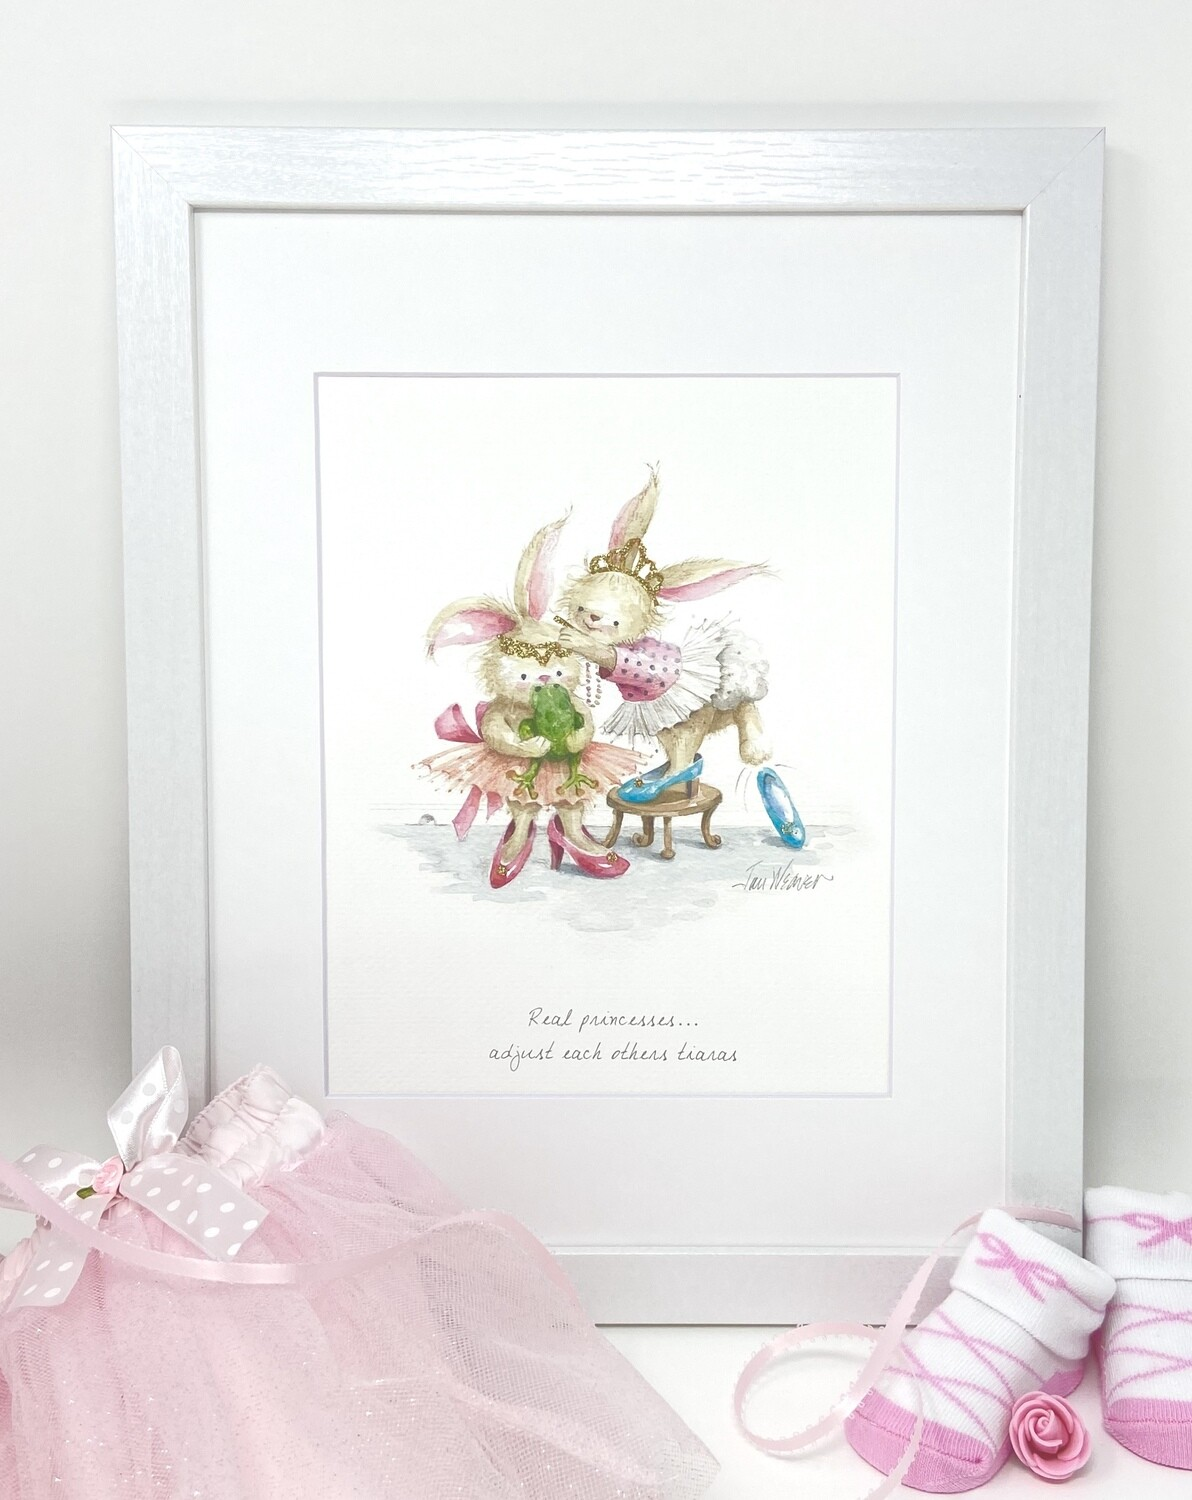 Nursery and Children's Art Print - Framed and Signed - REAL PRINCESSES ADJUST EACH OTHERS TIARAS